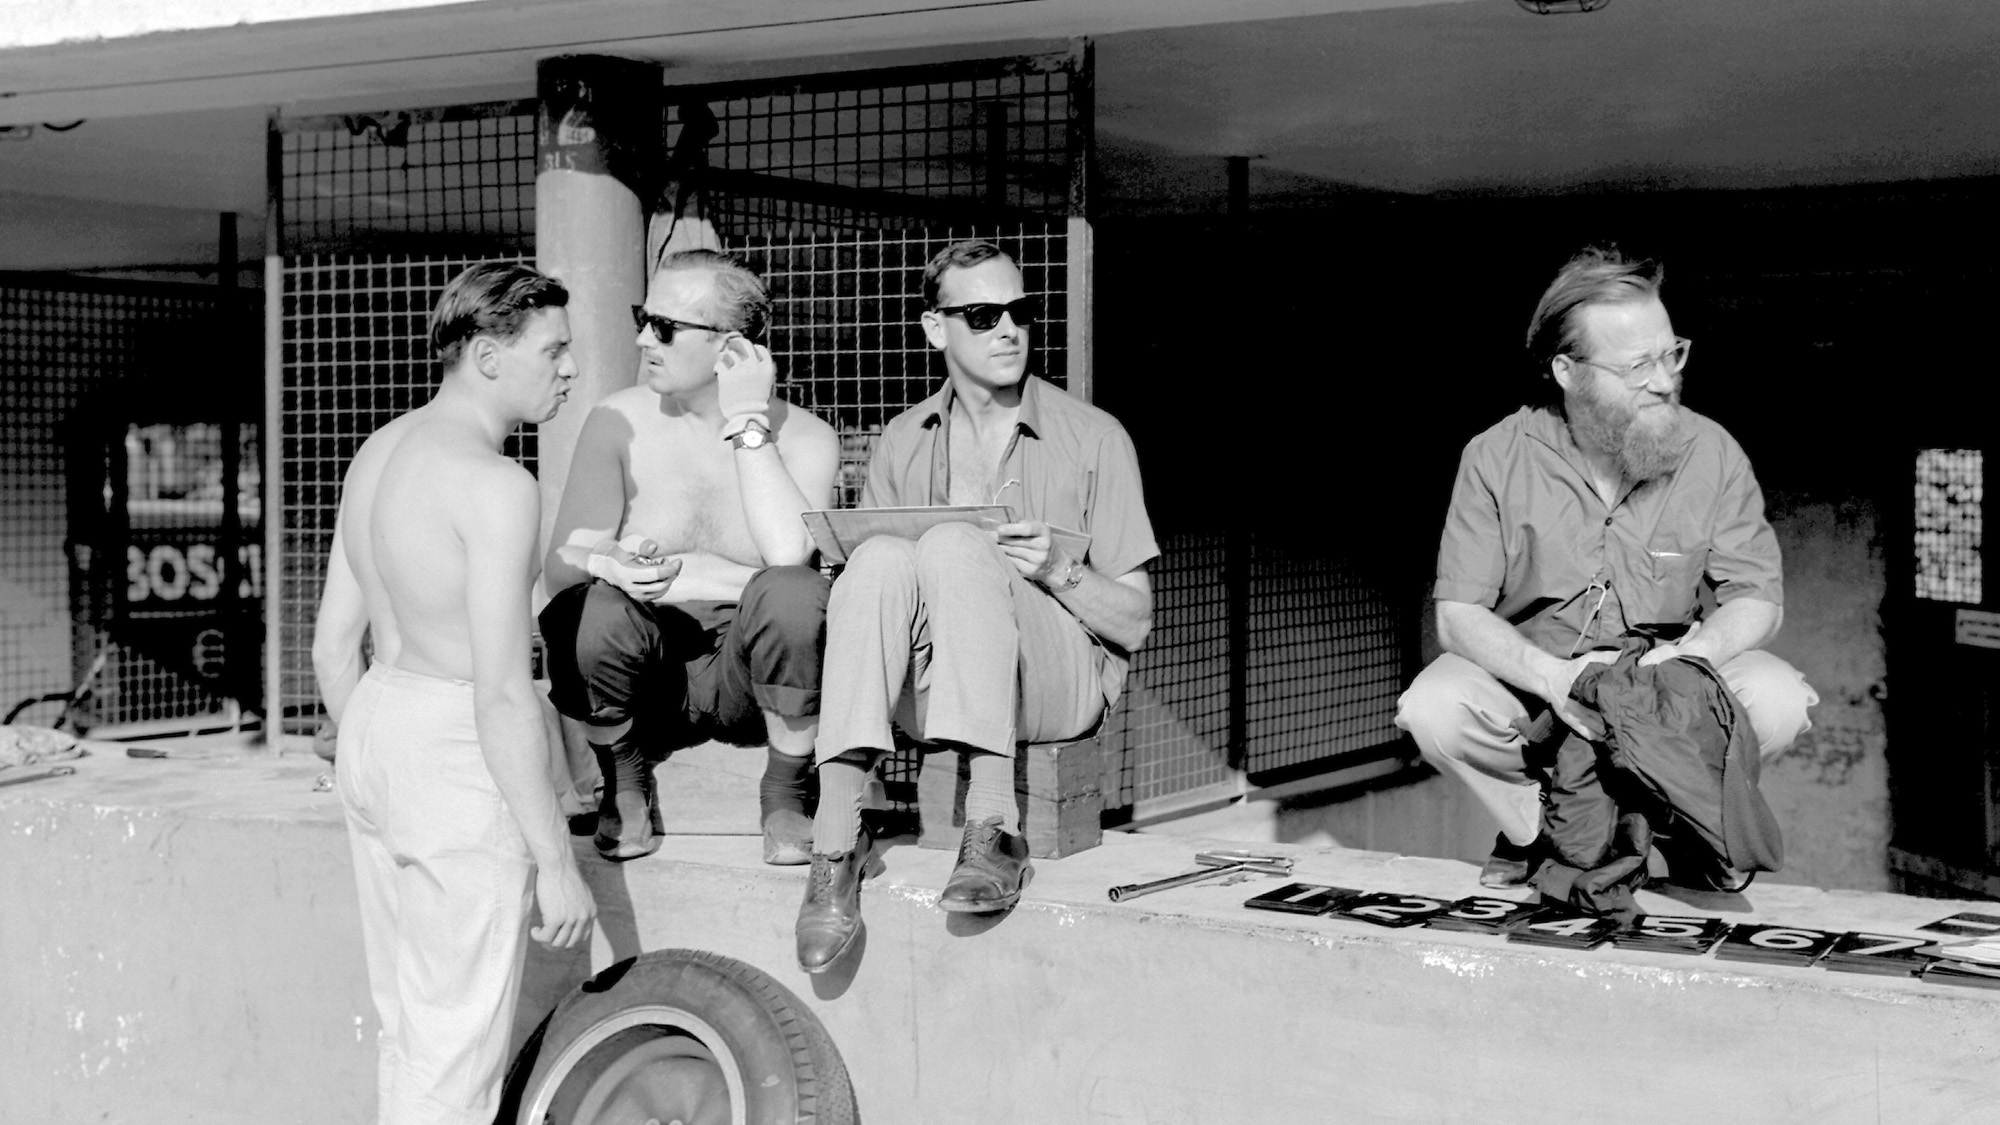 Denis Jenkinson with Jim Clark and Colin Chapman in the Monza pitlane in 1963